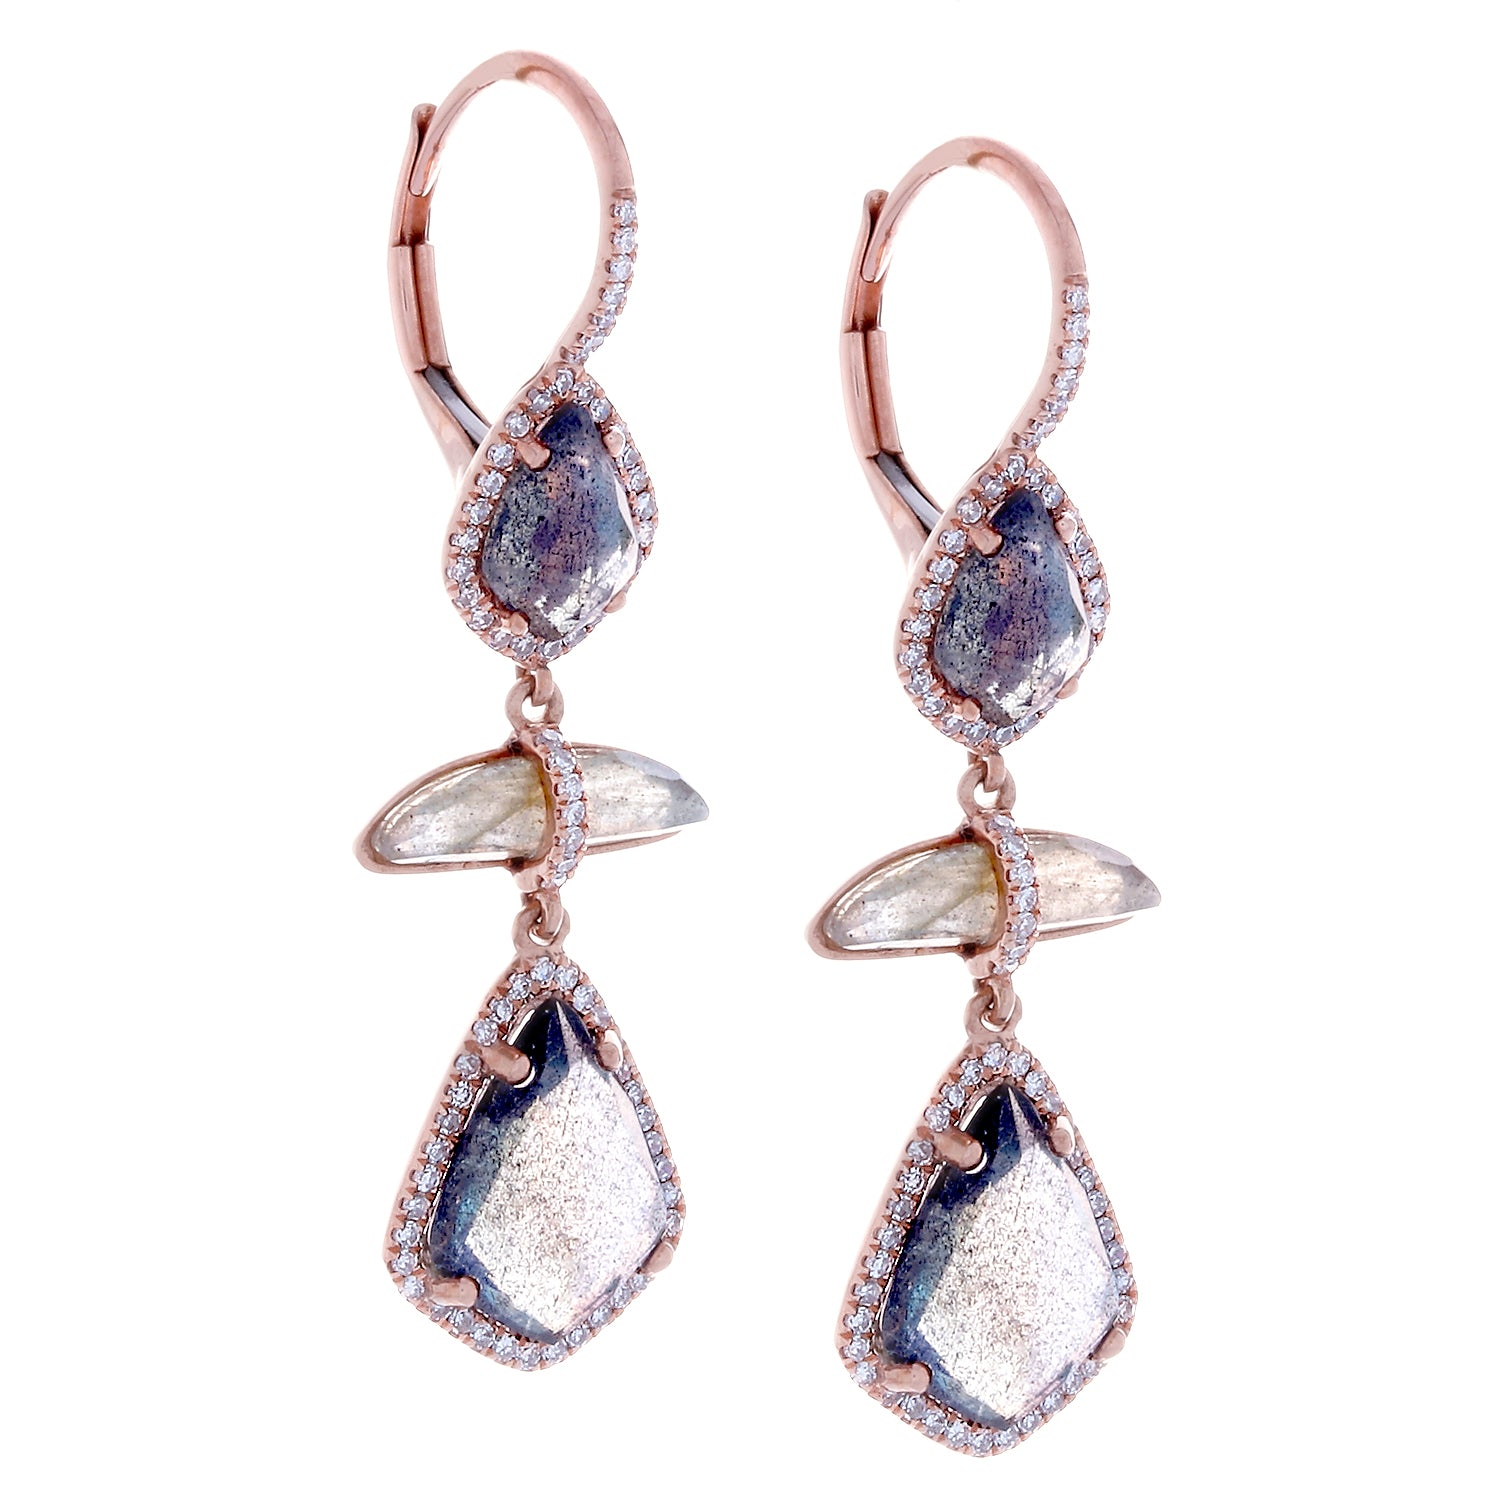 Labradorite, Diamonds & 14K Rose Gold Earrings - SOLD/CAN BE SPECIAL ORDERED WITH 4-6 WEEKS DELIVERY TIME FRAME